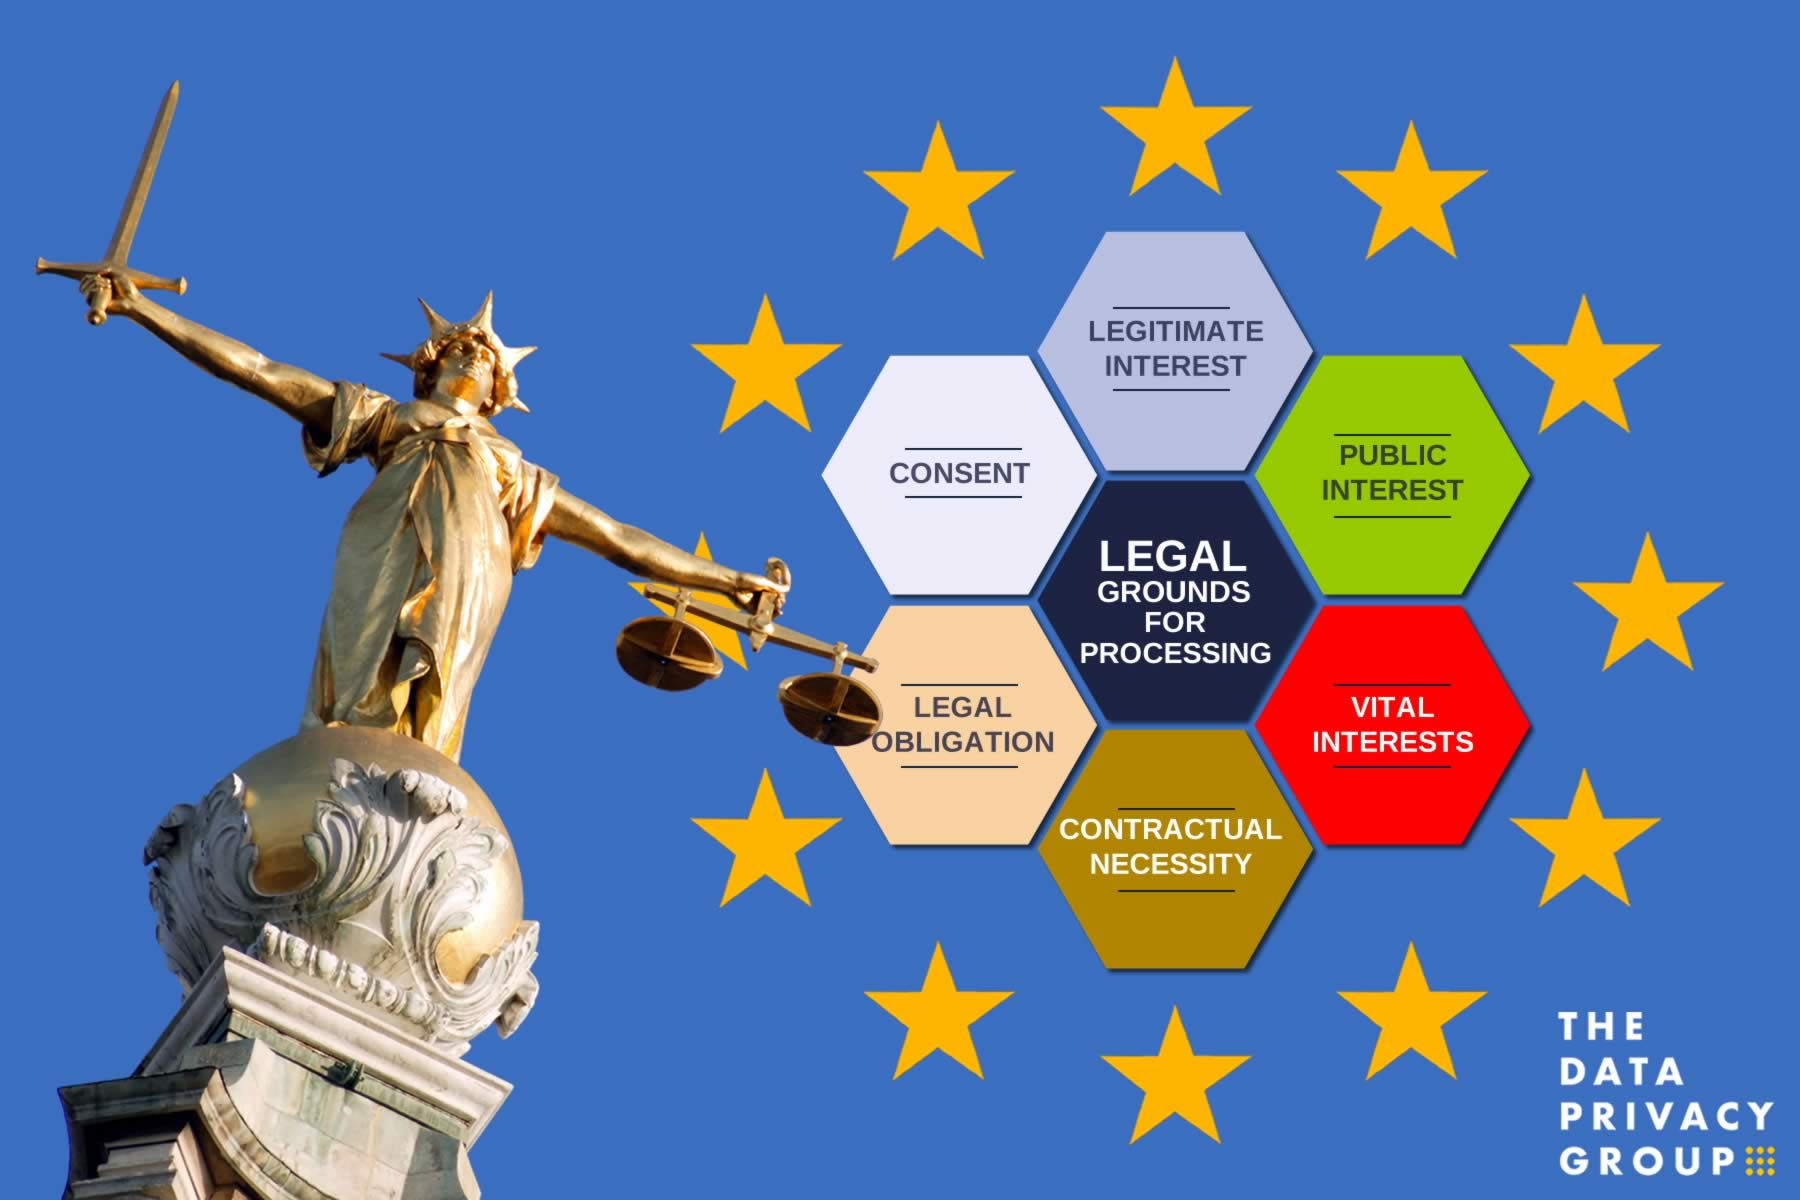 6 legal grounds for processing EMBED IN ARTICLE.jpg